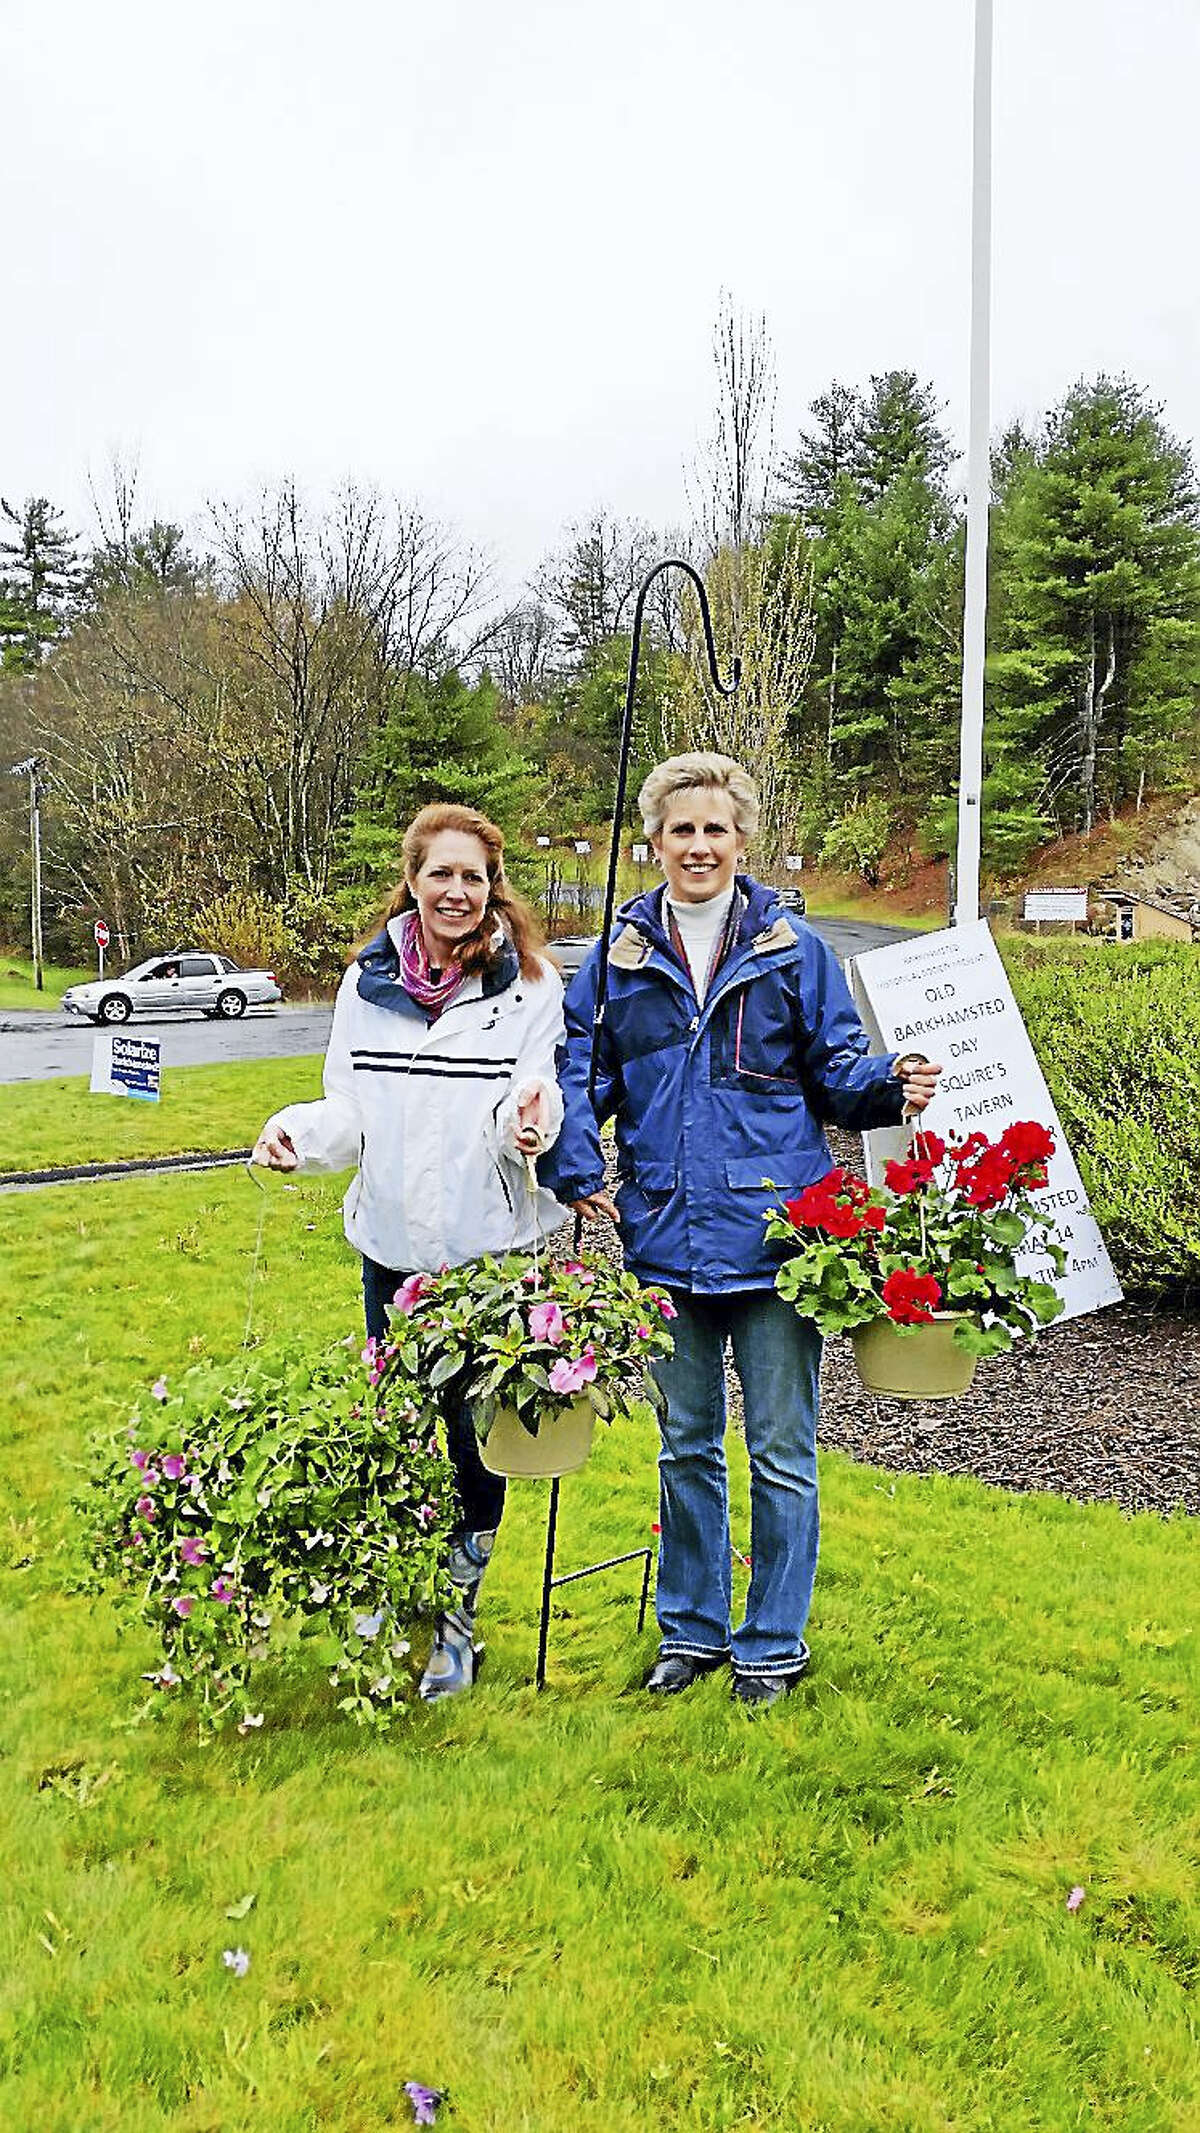 Barkhamsted Women's Club vice-president Karen Martin and membership director Linda Richard sold potted flowers, vegetables, greeting cards, and Barkhamsted-themed ornaments at the Women's Club's 19th annual Mother's Day Flower Sale at the Barkhamsted Town Garage Saturday, May 7, 2016.